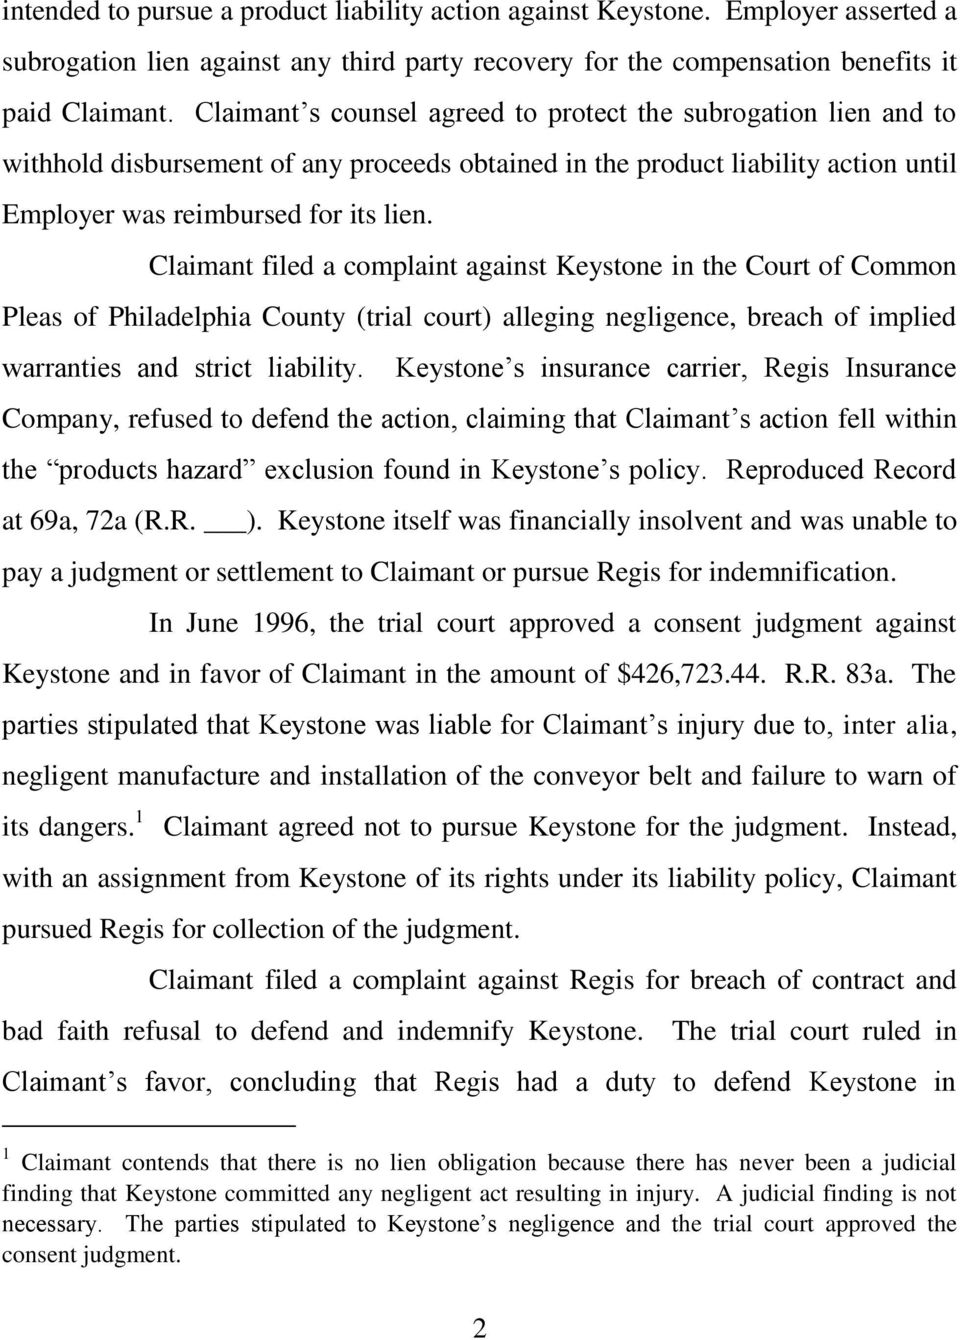 Claimant filed a complaint against Keystone in the Court of Common Pleas of Philadelphia County (trial court) alleging negligence, breach of implied warranties and strict liability.